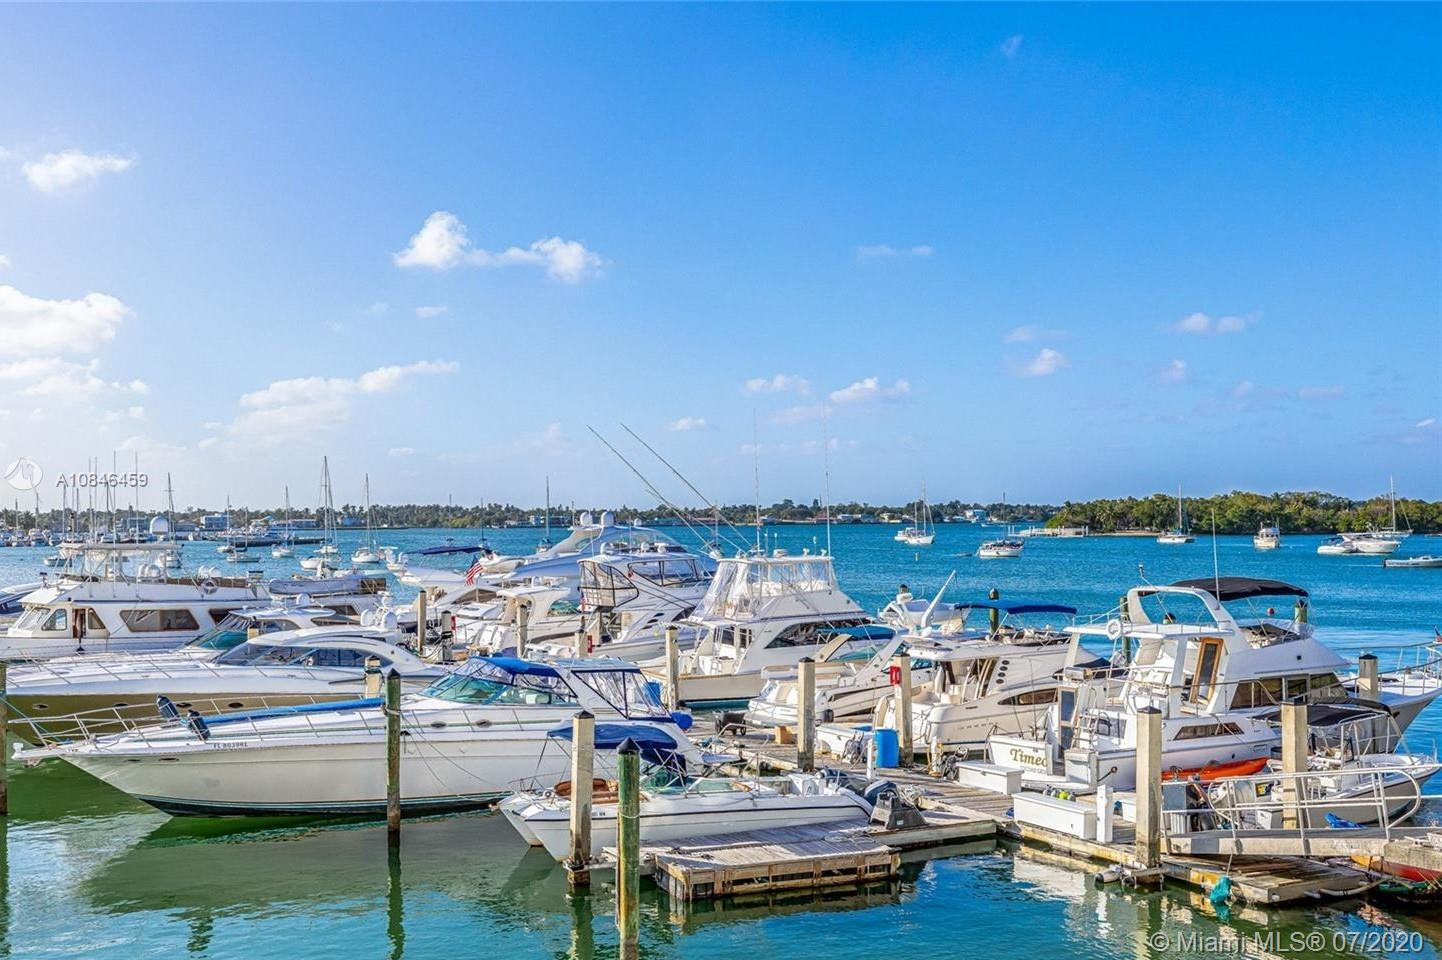 7904 W West Drive # 1003, North Bay Village, Florida 33141, ,1 BathroomBathrooms,Residential,For Sale,7904 W West Drive # 1003,A10846459